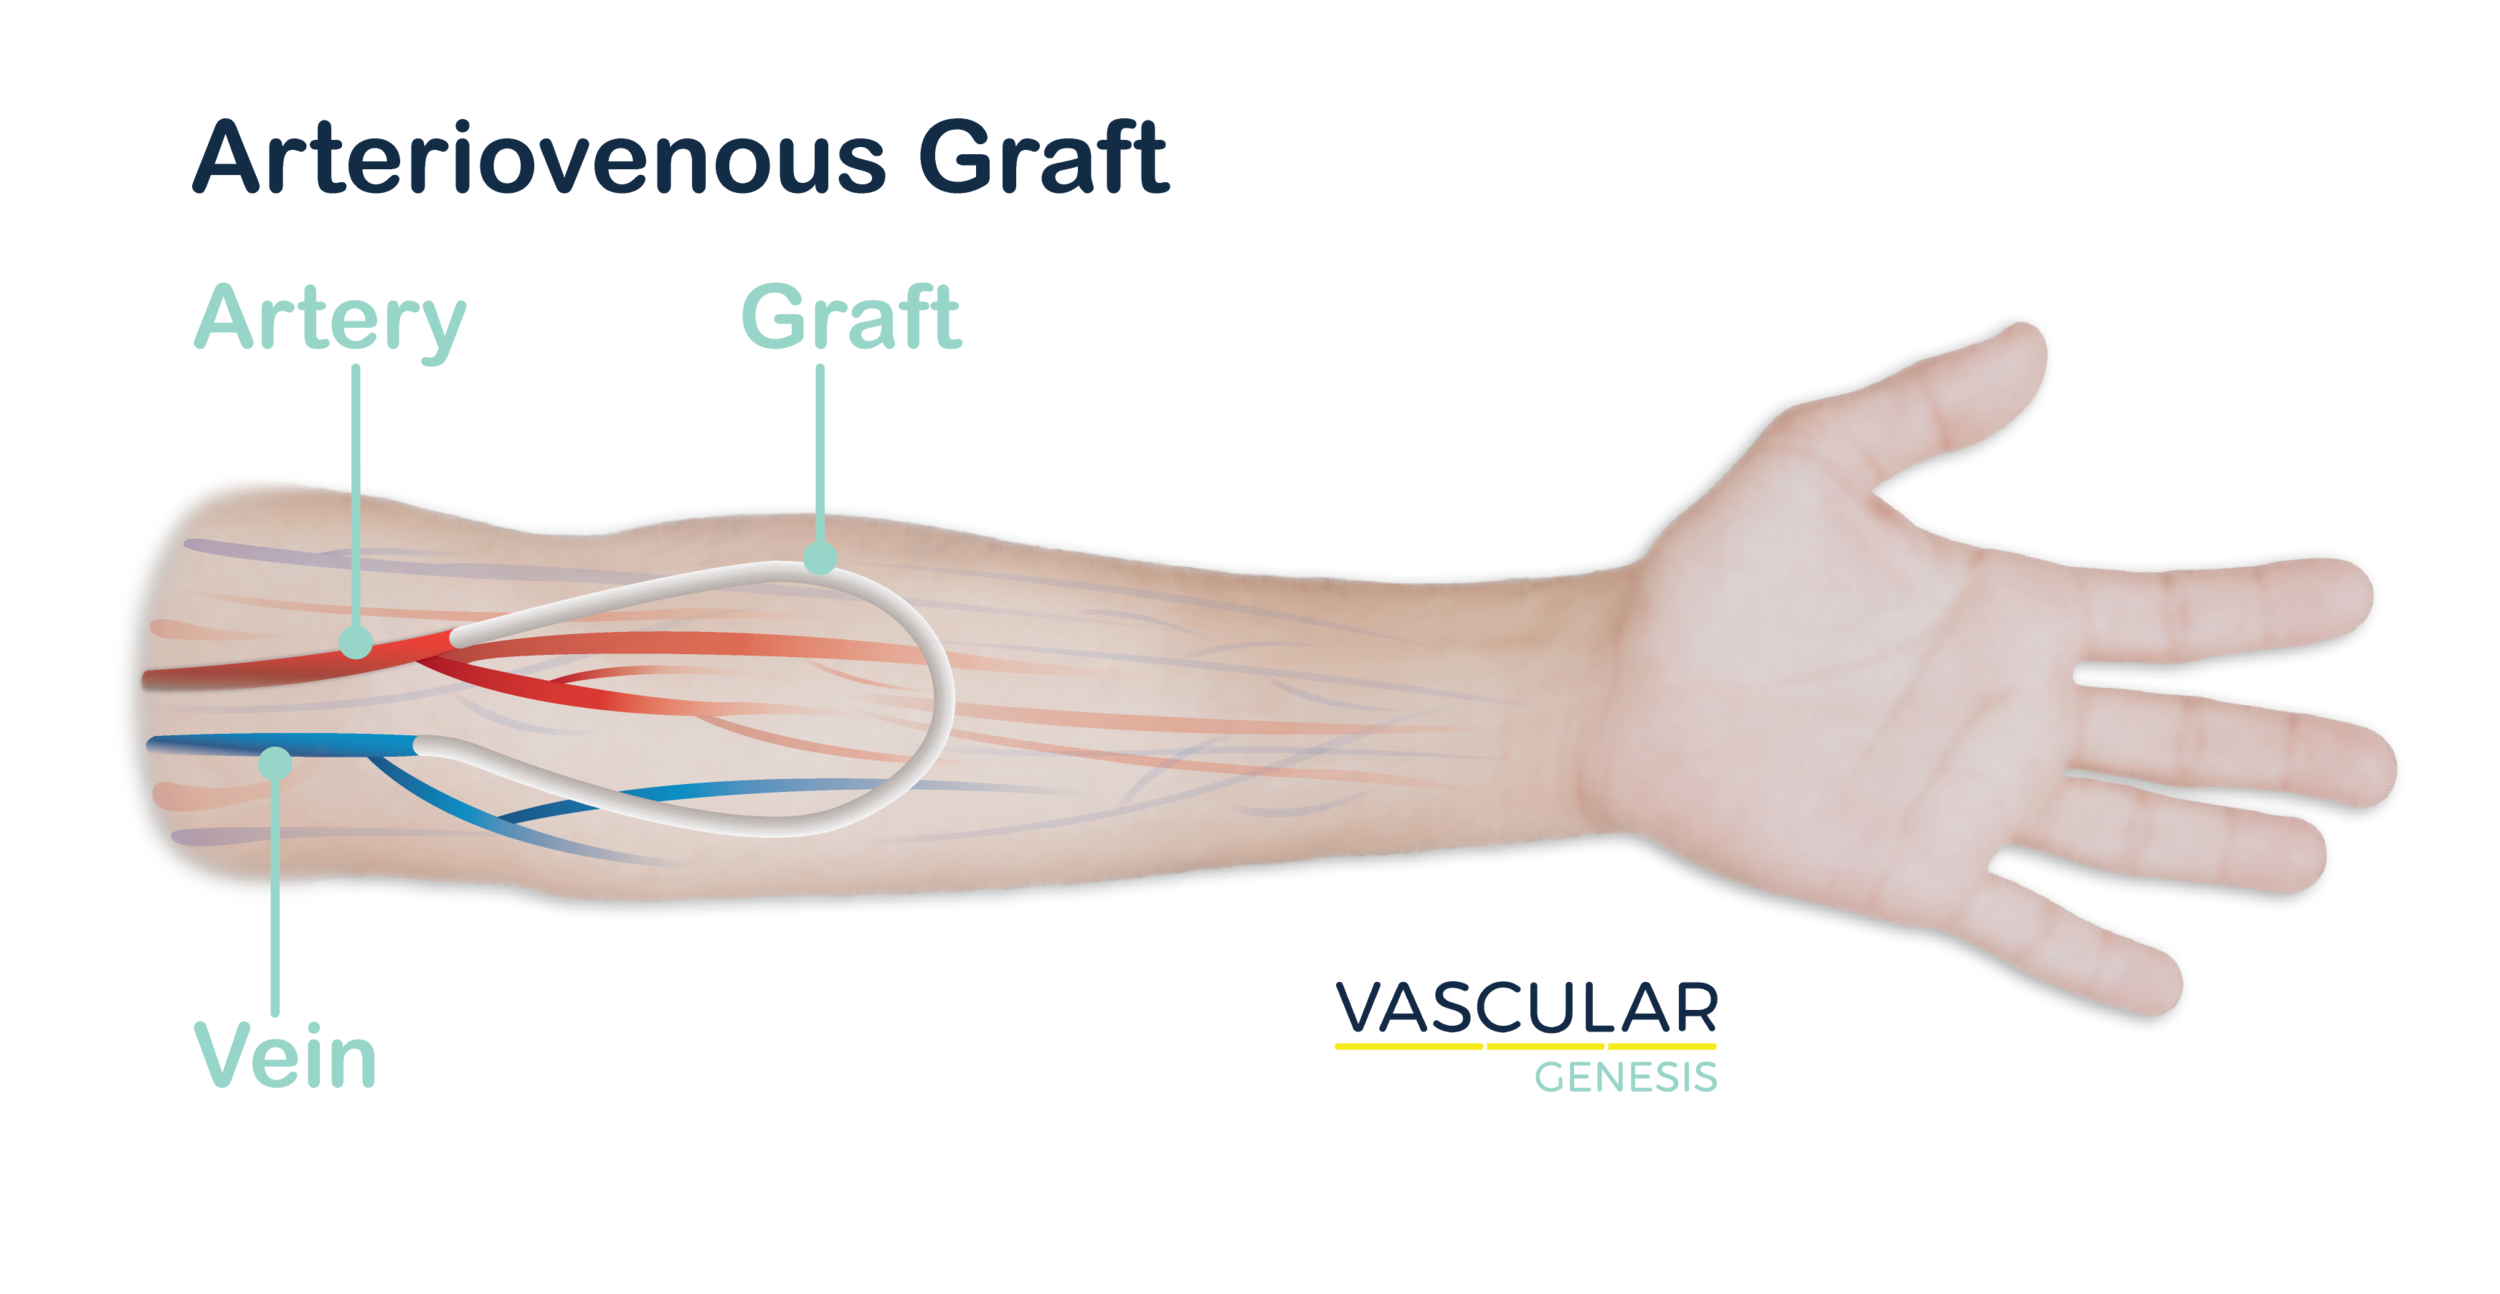 arm-graft-graphic-01.png